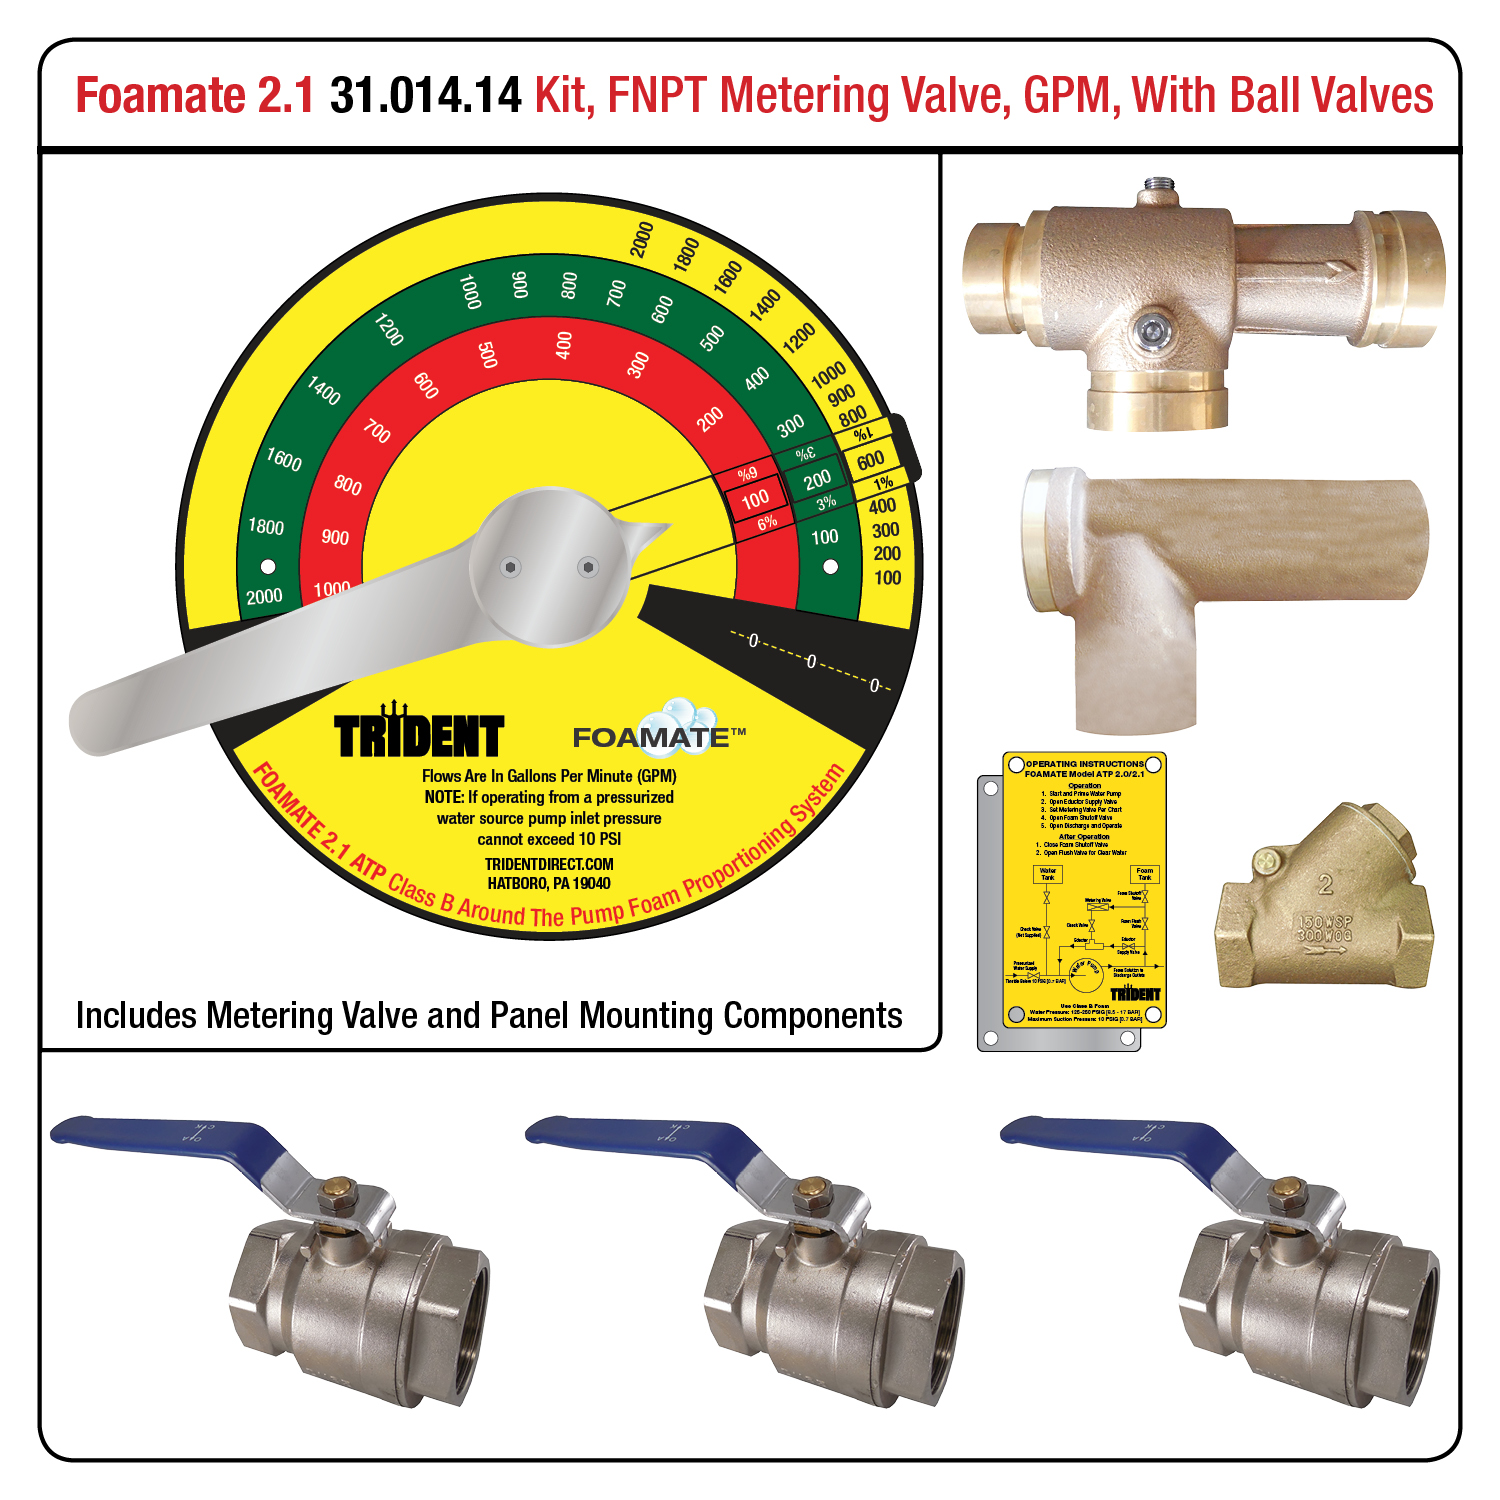 Foamate 2.1 ATP System, Metering Valve with FNPT Ends, GPM Flow Rates, w/ Ball Valves